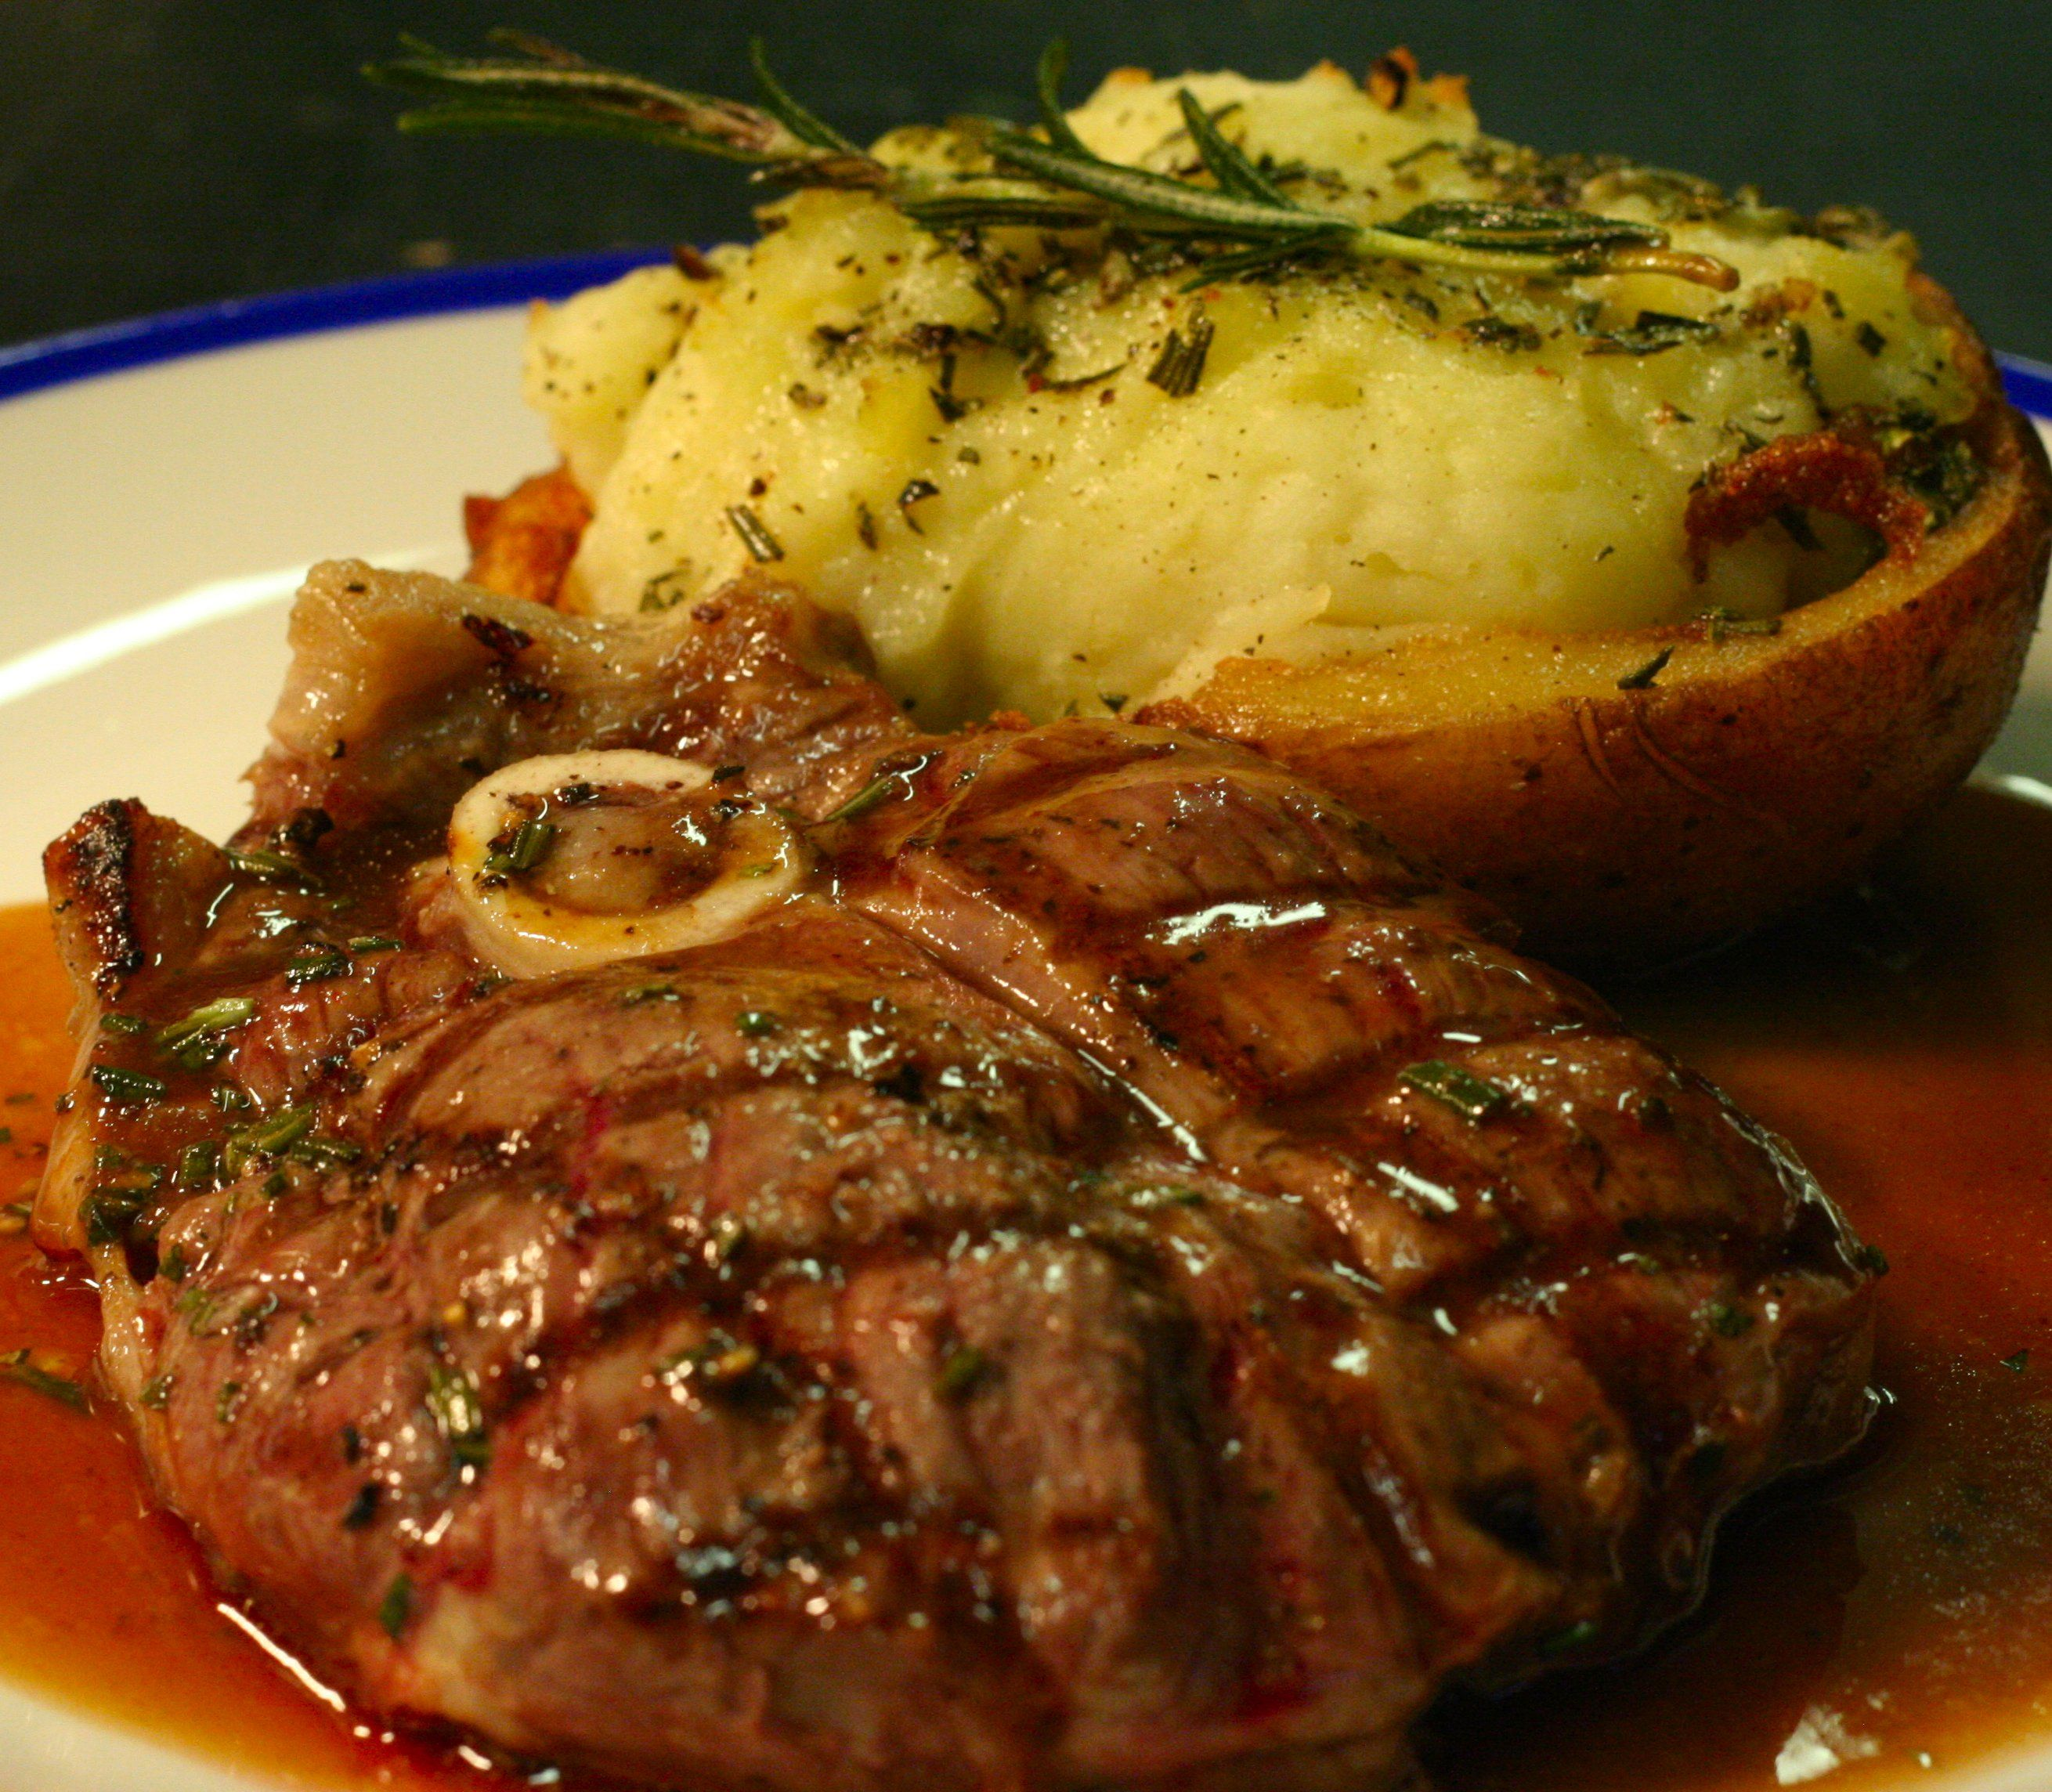 grilled lamb steak, rosemary-jacket potato